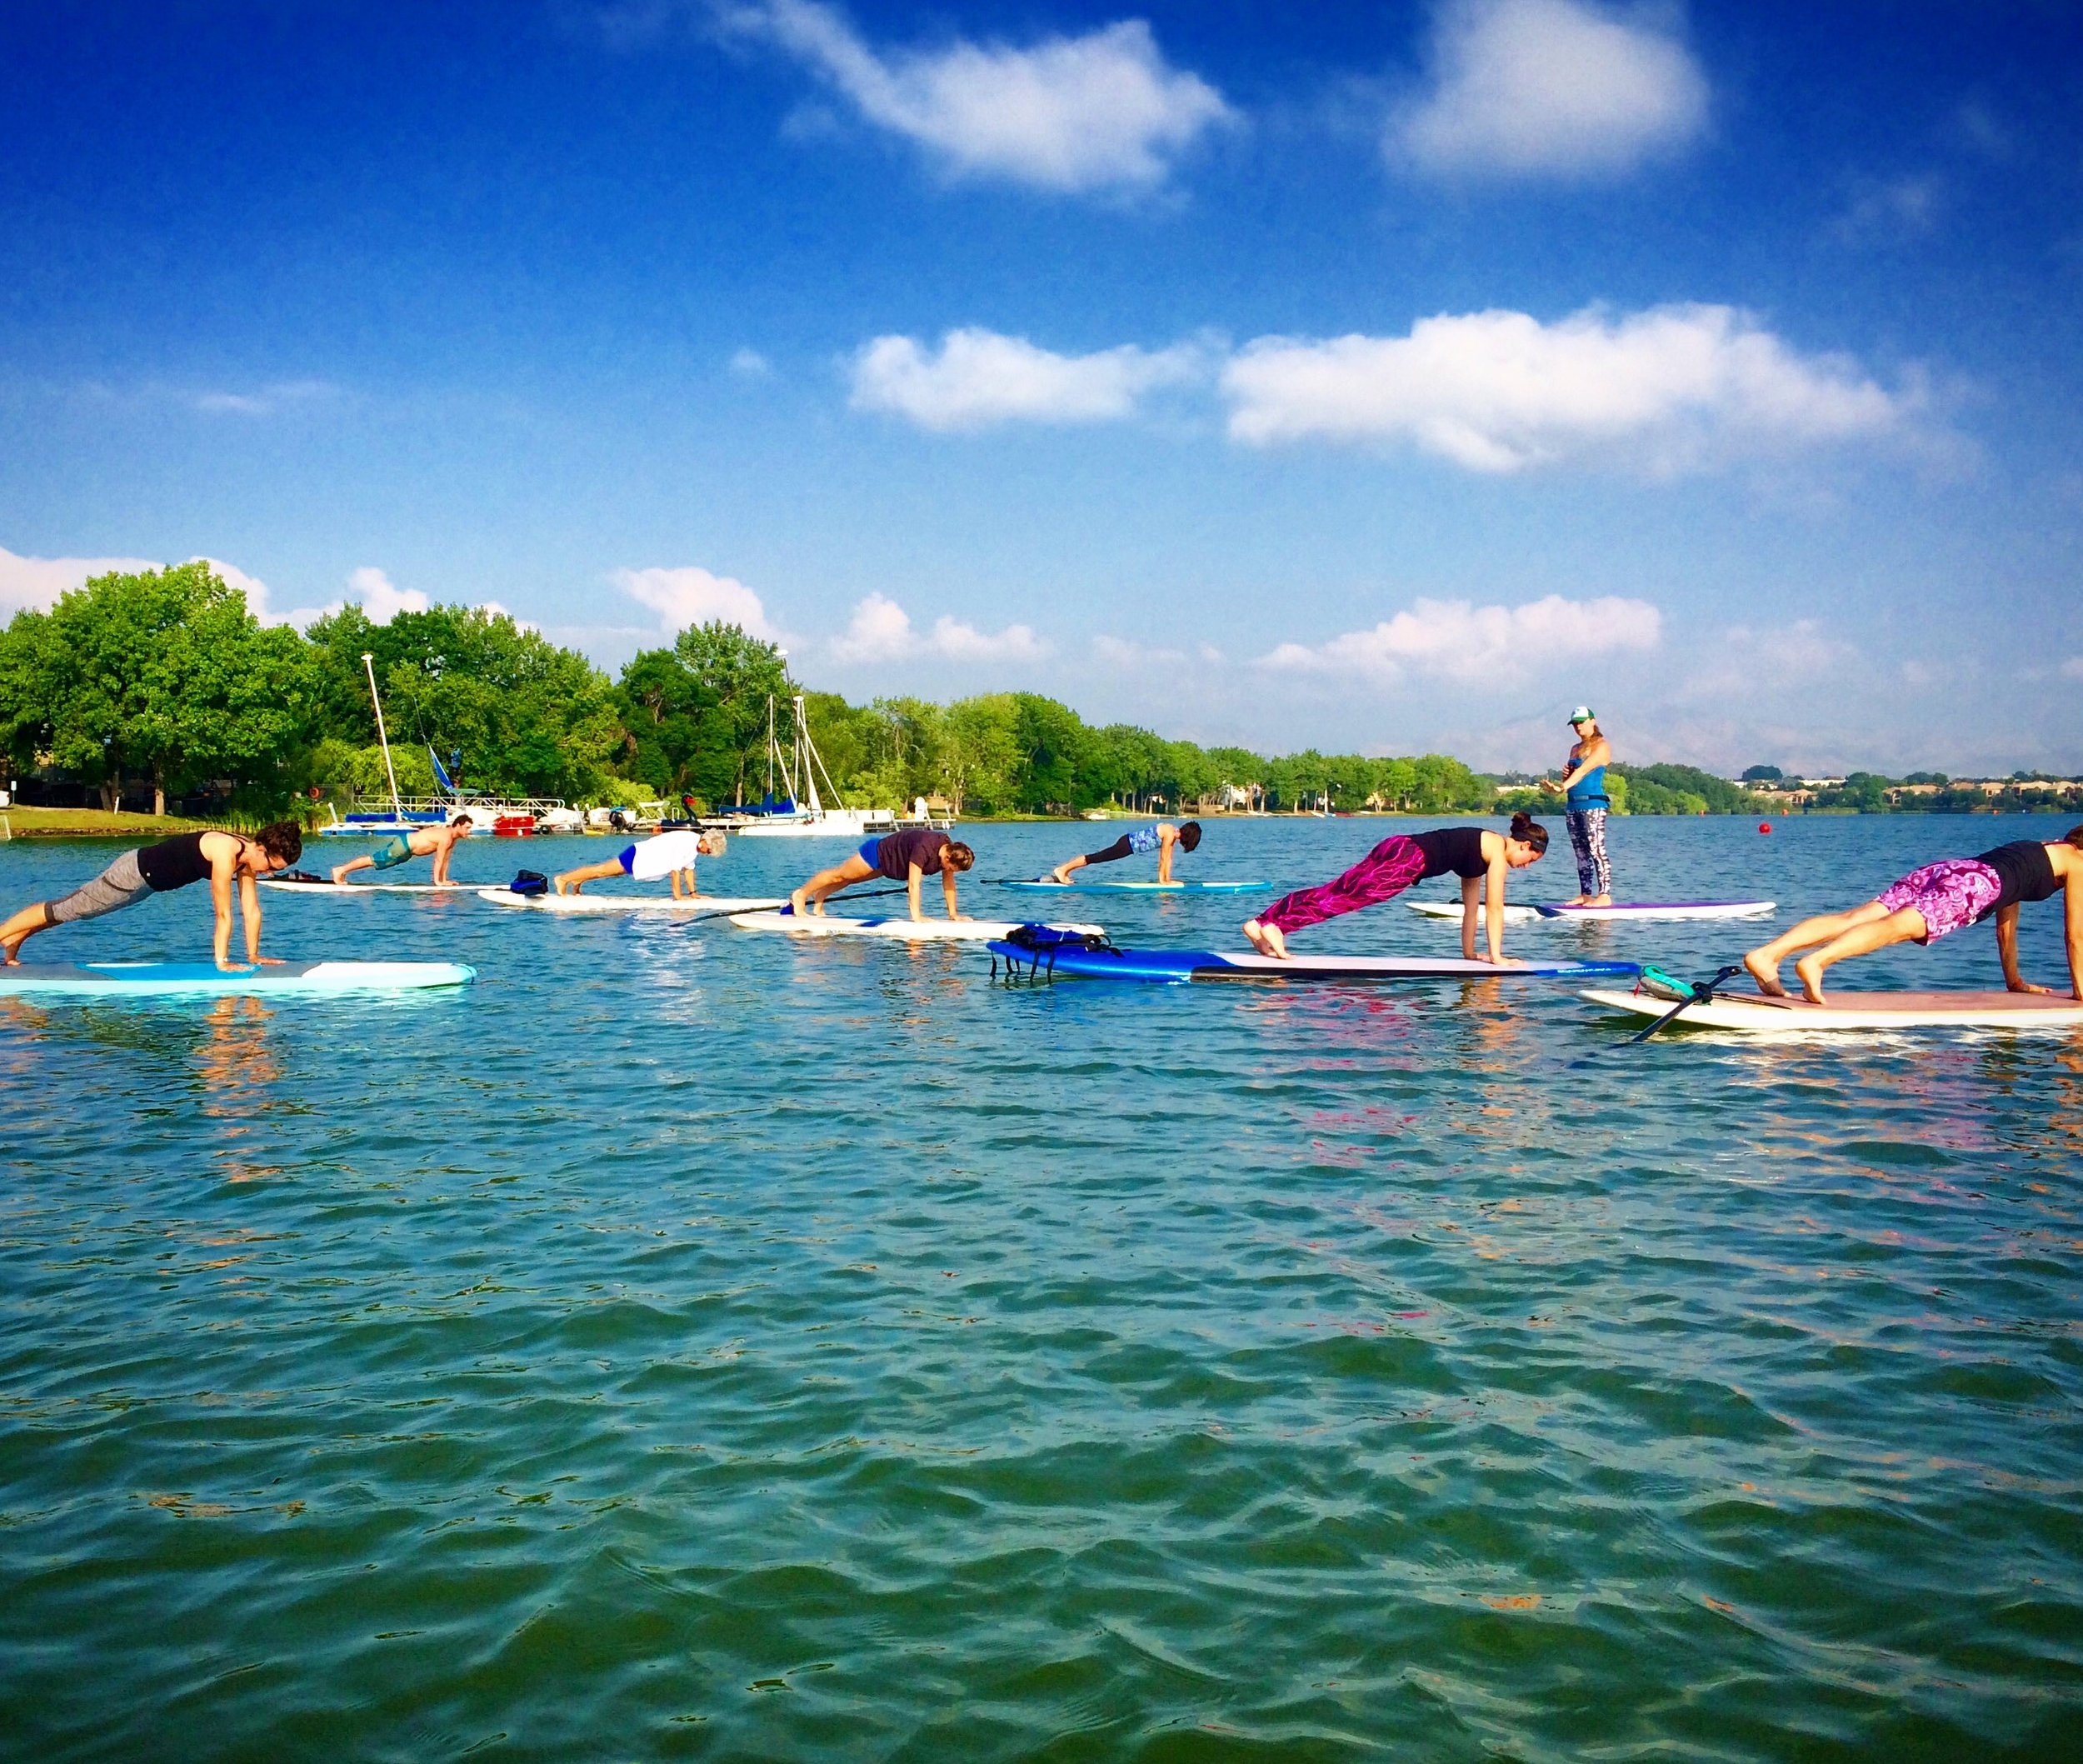 WEEKLY SUP YOGA SCHEDULE - Mondays, 8:30-10am at Boulder Reservoir, Rocky Mountain PaddleboardWednesdays, 9-10:30am at Cherry Creek Reservoir, Rocky Mountain PaddleboardThursdays, 6-7pm at Grant Ranch, Altitude PaddleboardsSaturdays, 8:30-10am at Boulder Reservoir, Rocky Mountain PaddleboardSundays, 9-10:30am at Cherry Creek Reservoir, Rocky Mountain Paddleboard